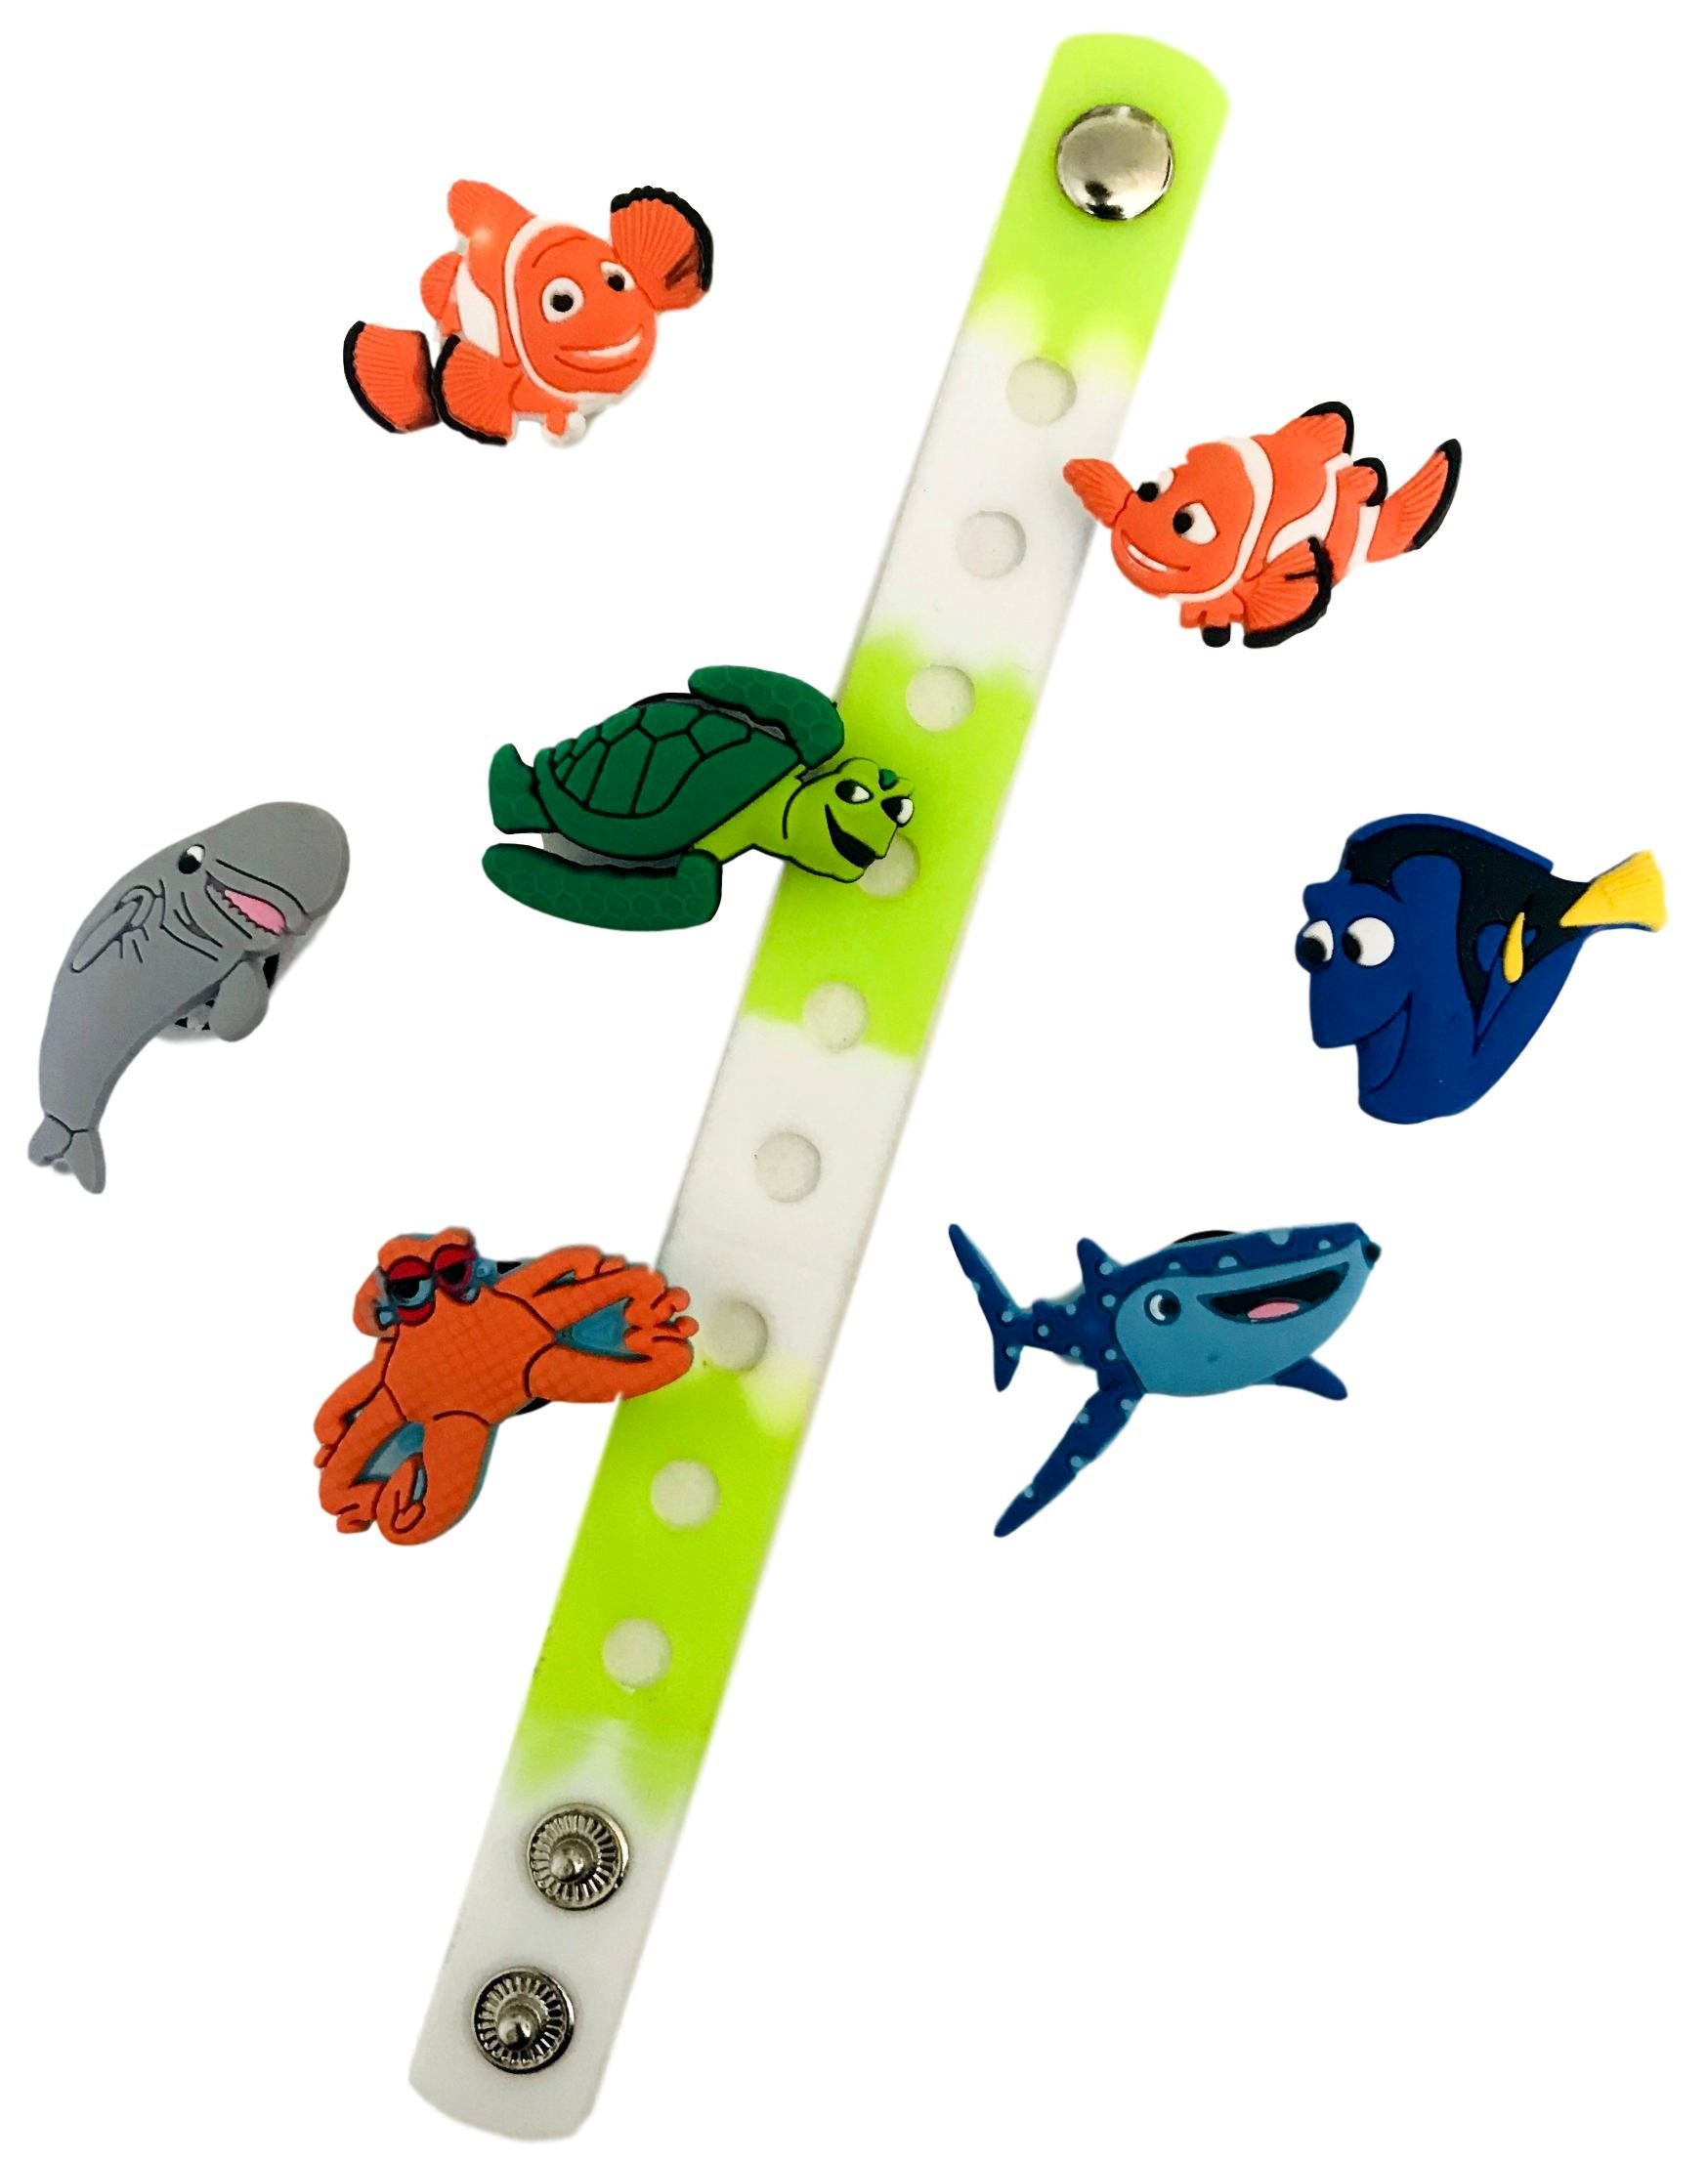 Cute Jibbitz Shoe Charms PVC Plug by Nenistore|Accessories for Croc Shoes & Bracelet Wristband Party Gifts | Finding Nemo (7pcs) FREE 01 Silicone Wristband 7 Inches